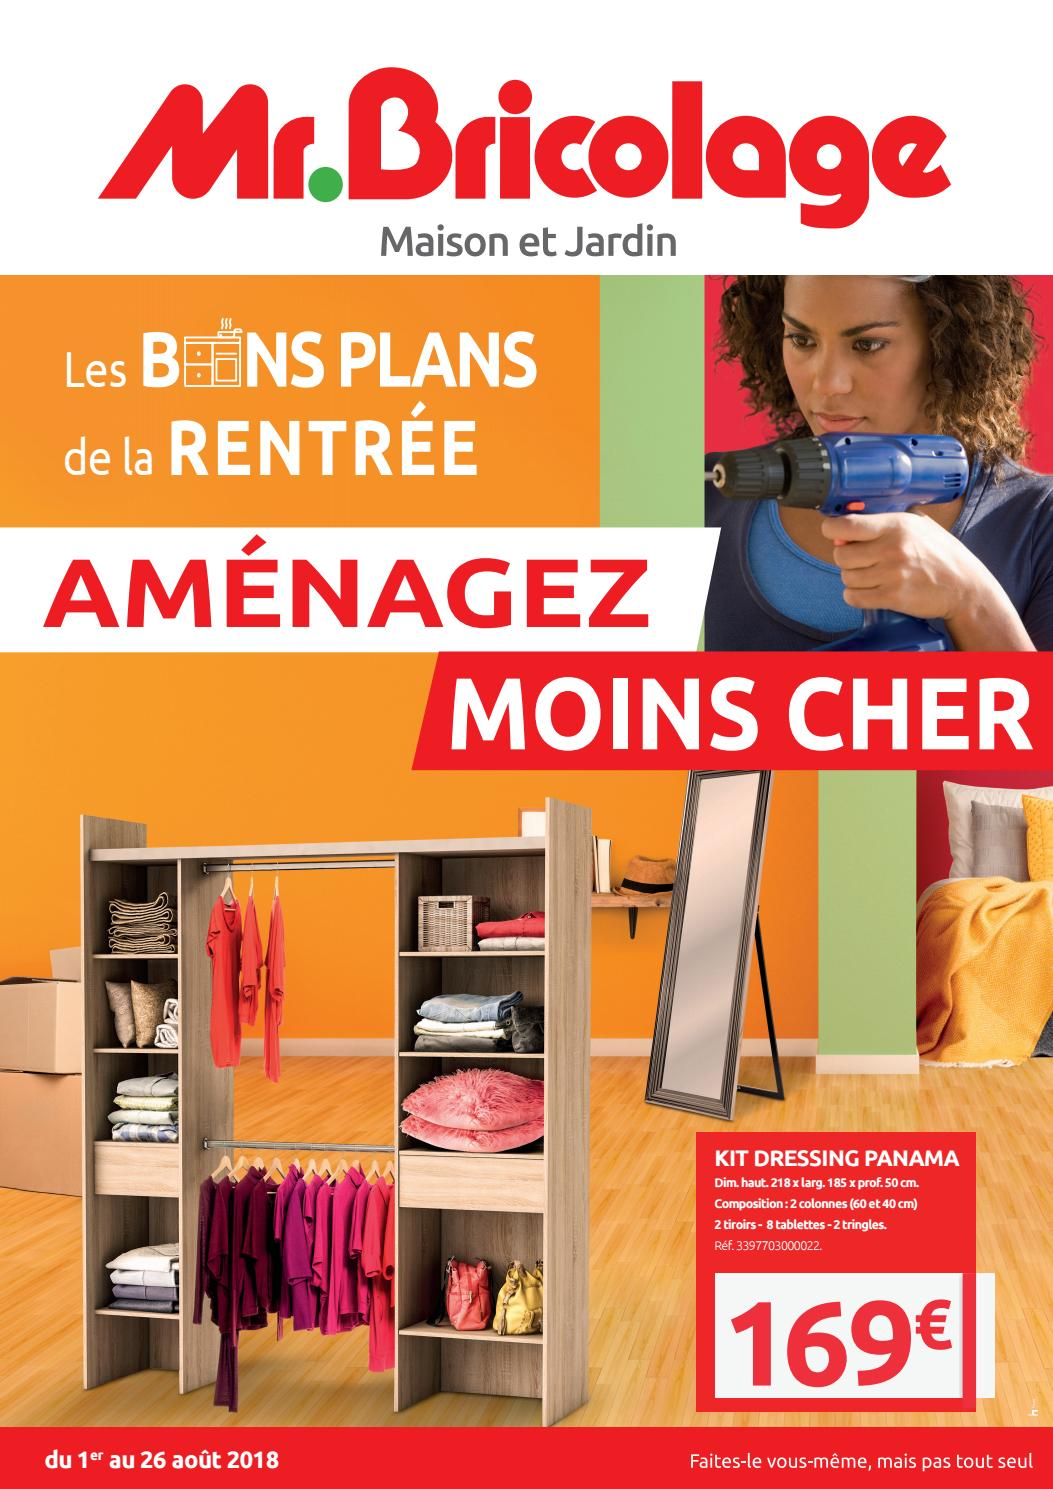 Mr Bricolage Martinique Amenagez Moins Cher By Momentum Media